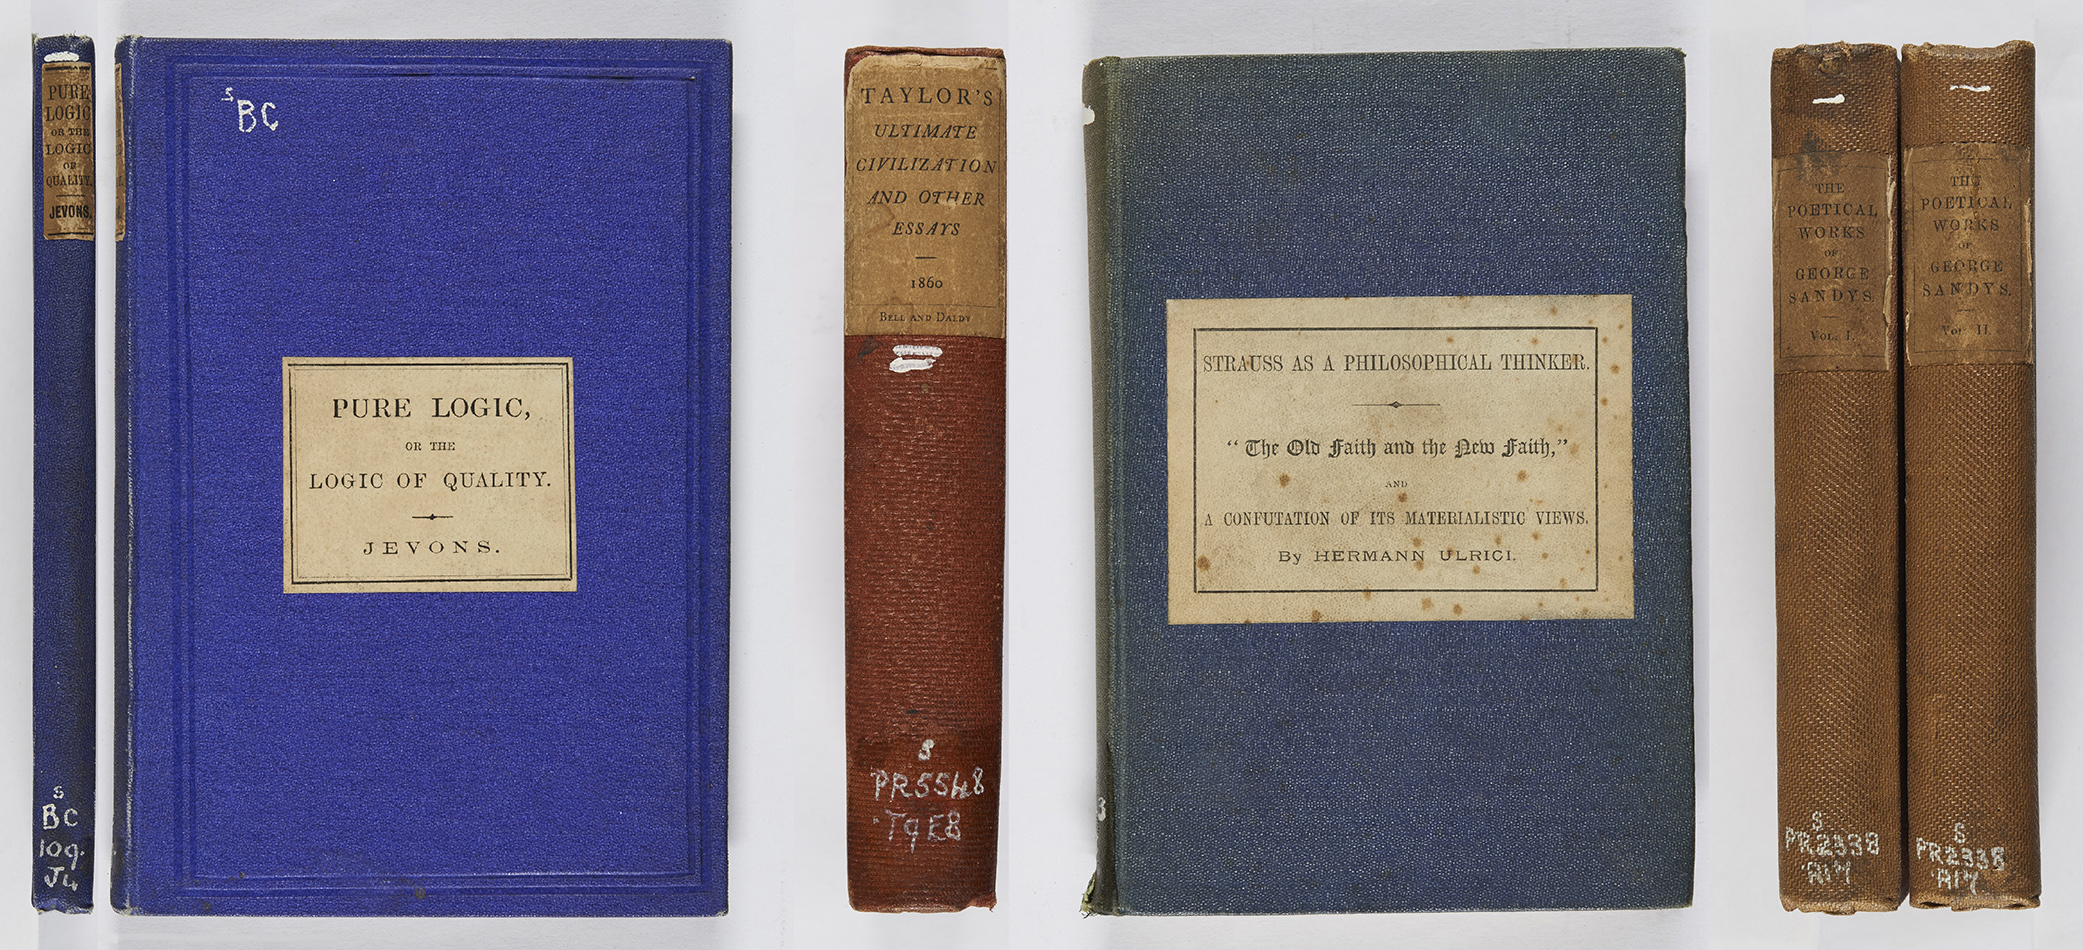 victorian cloth bindings week titles echoes from the vault w stanley jevons pure logic london edward stanford 1864 r bc109 j4 isaac taylor ultimate civilization and other essays london bell and